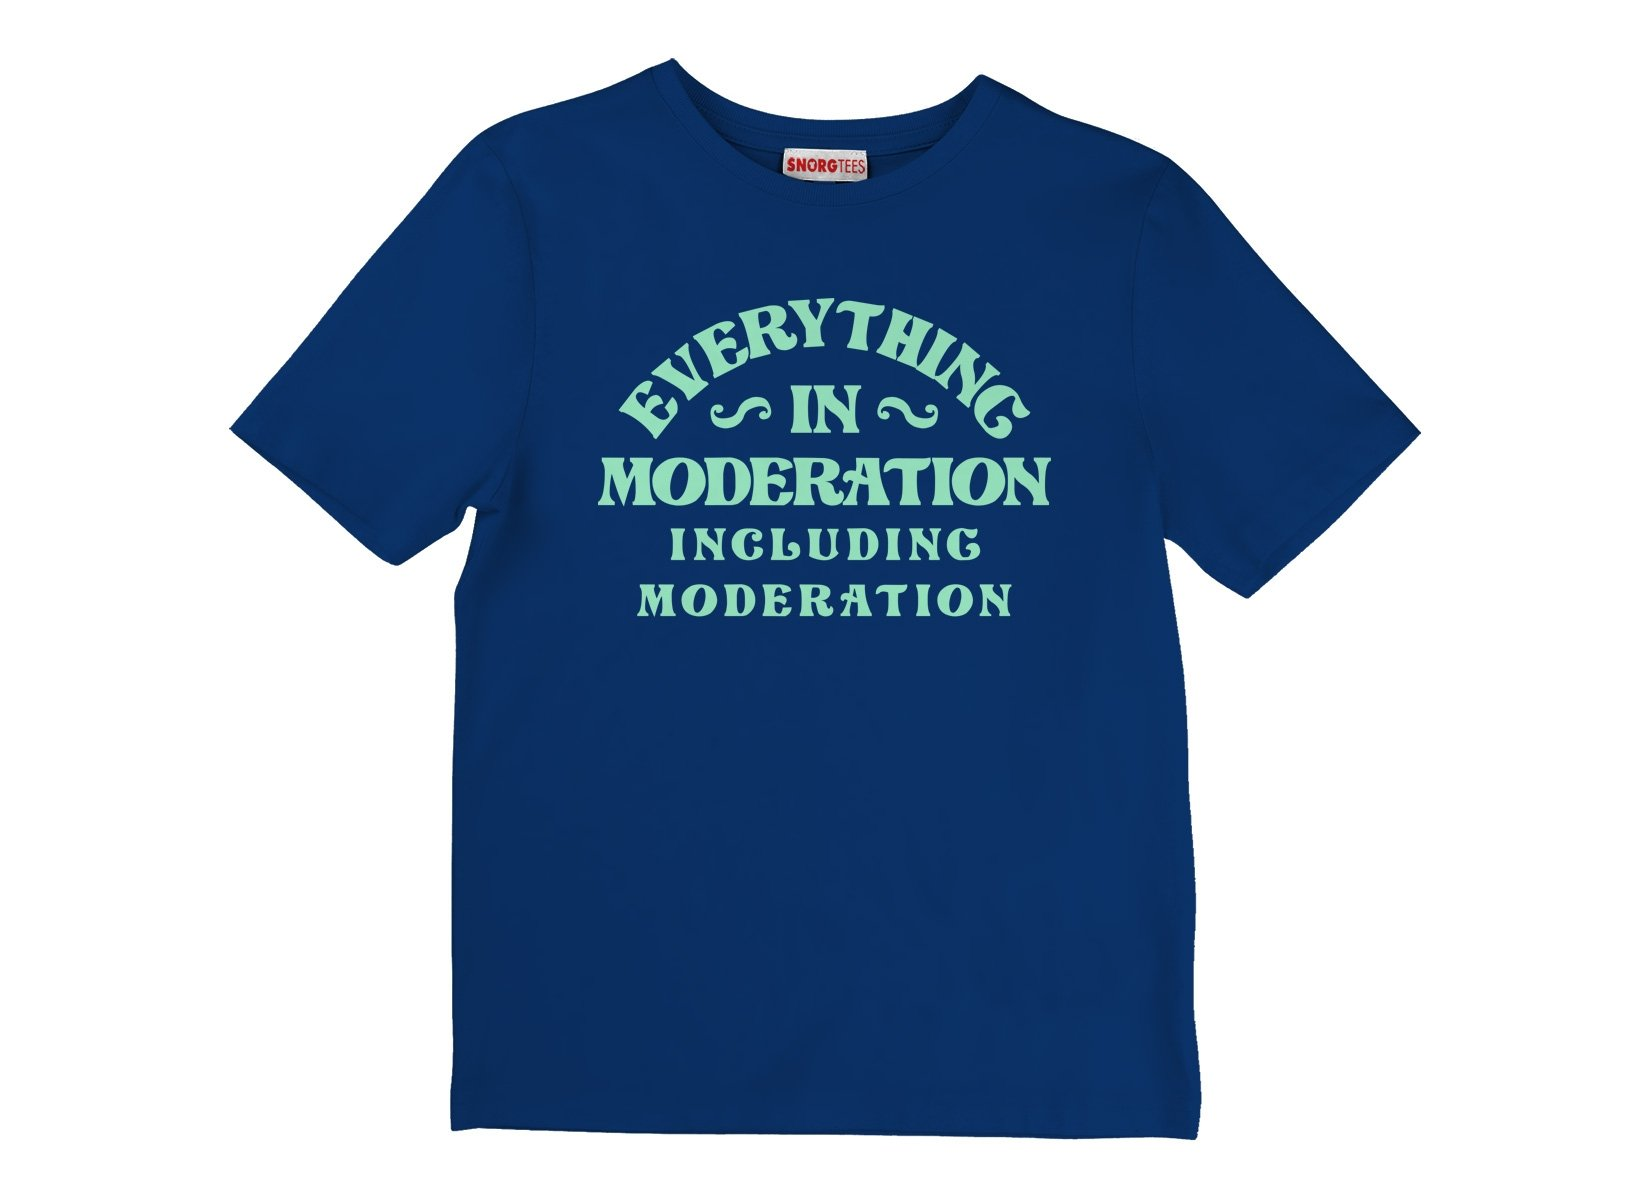 Everything In Moderation Including Moderation on Kids T-Shirt